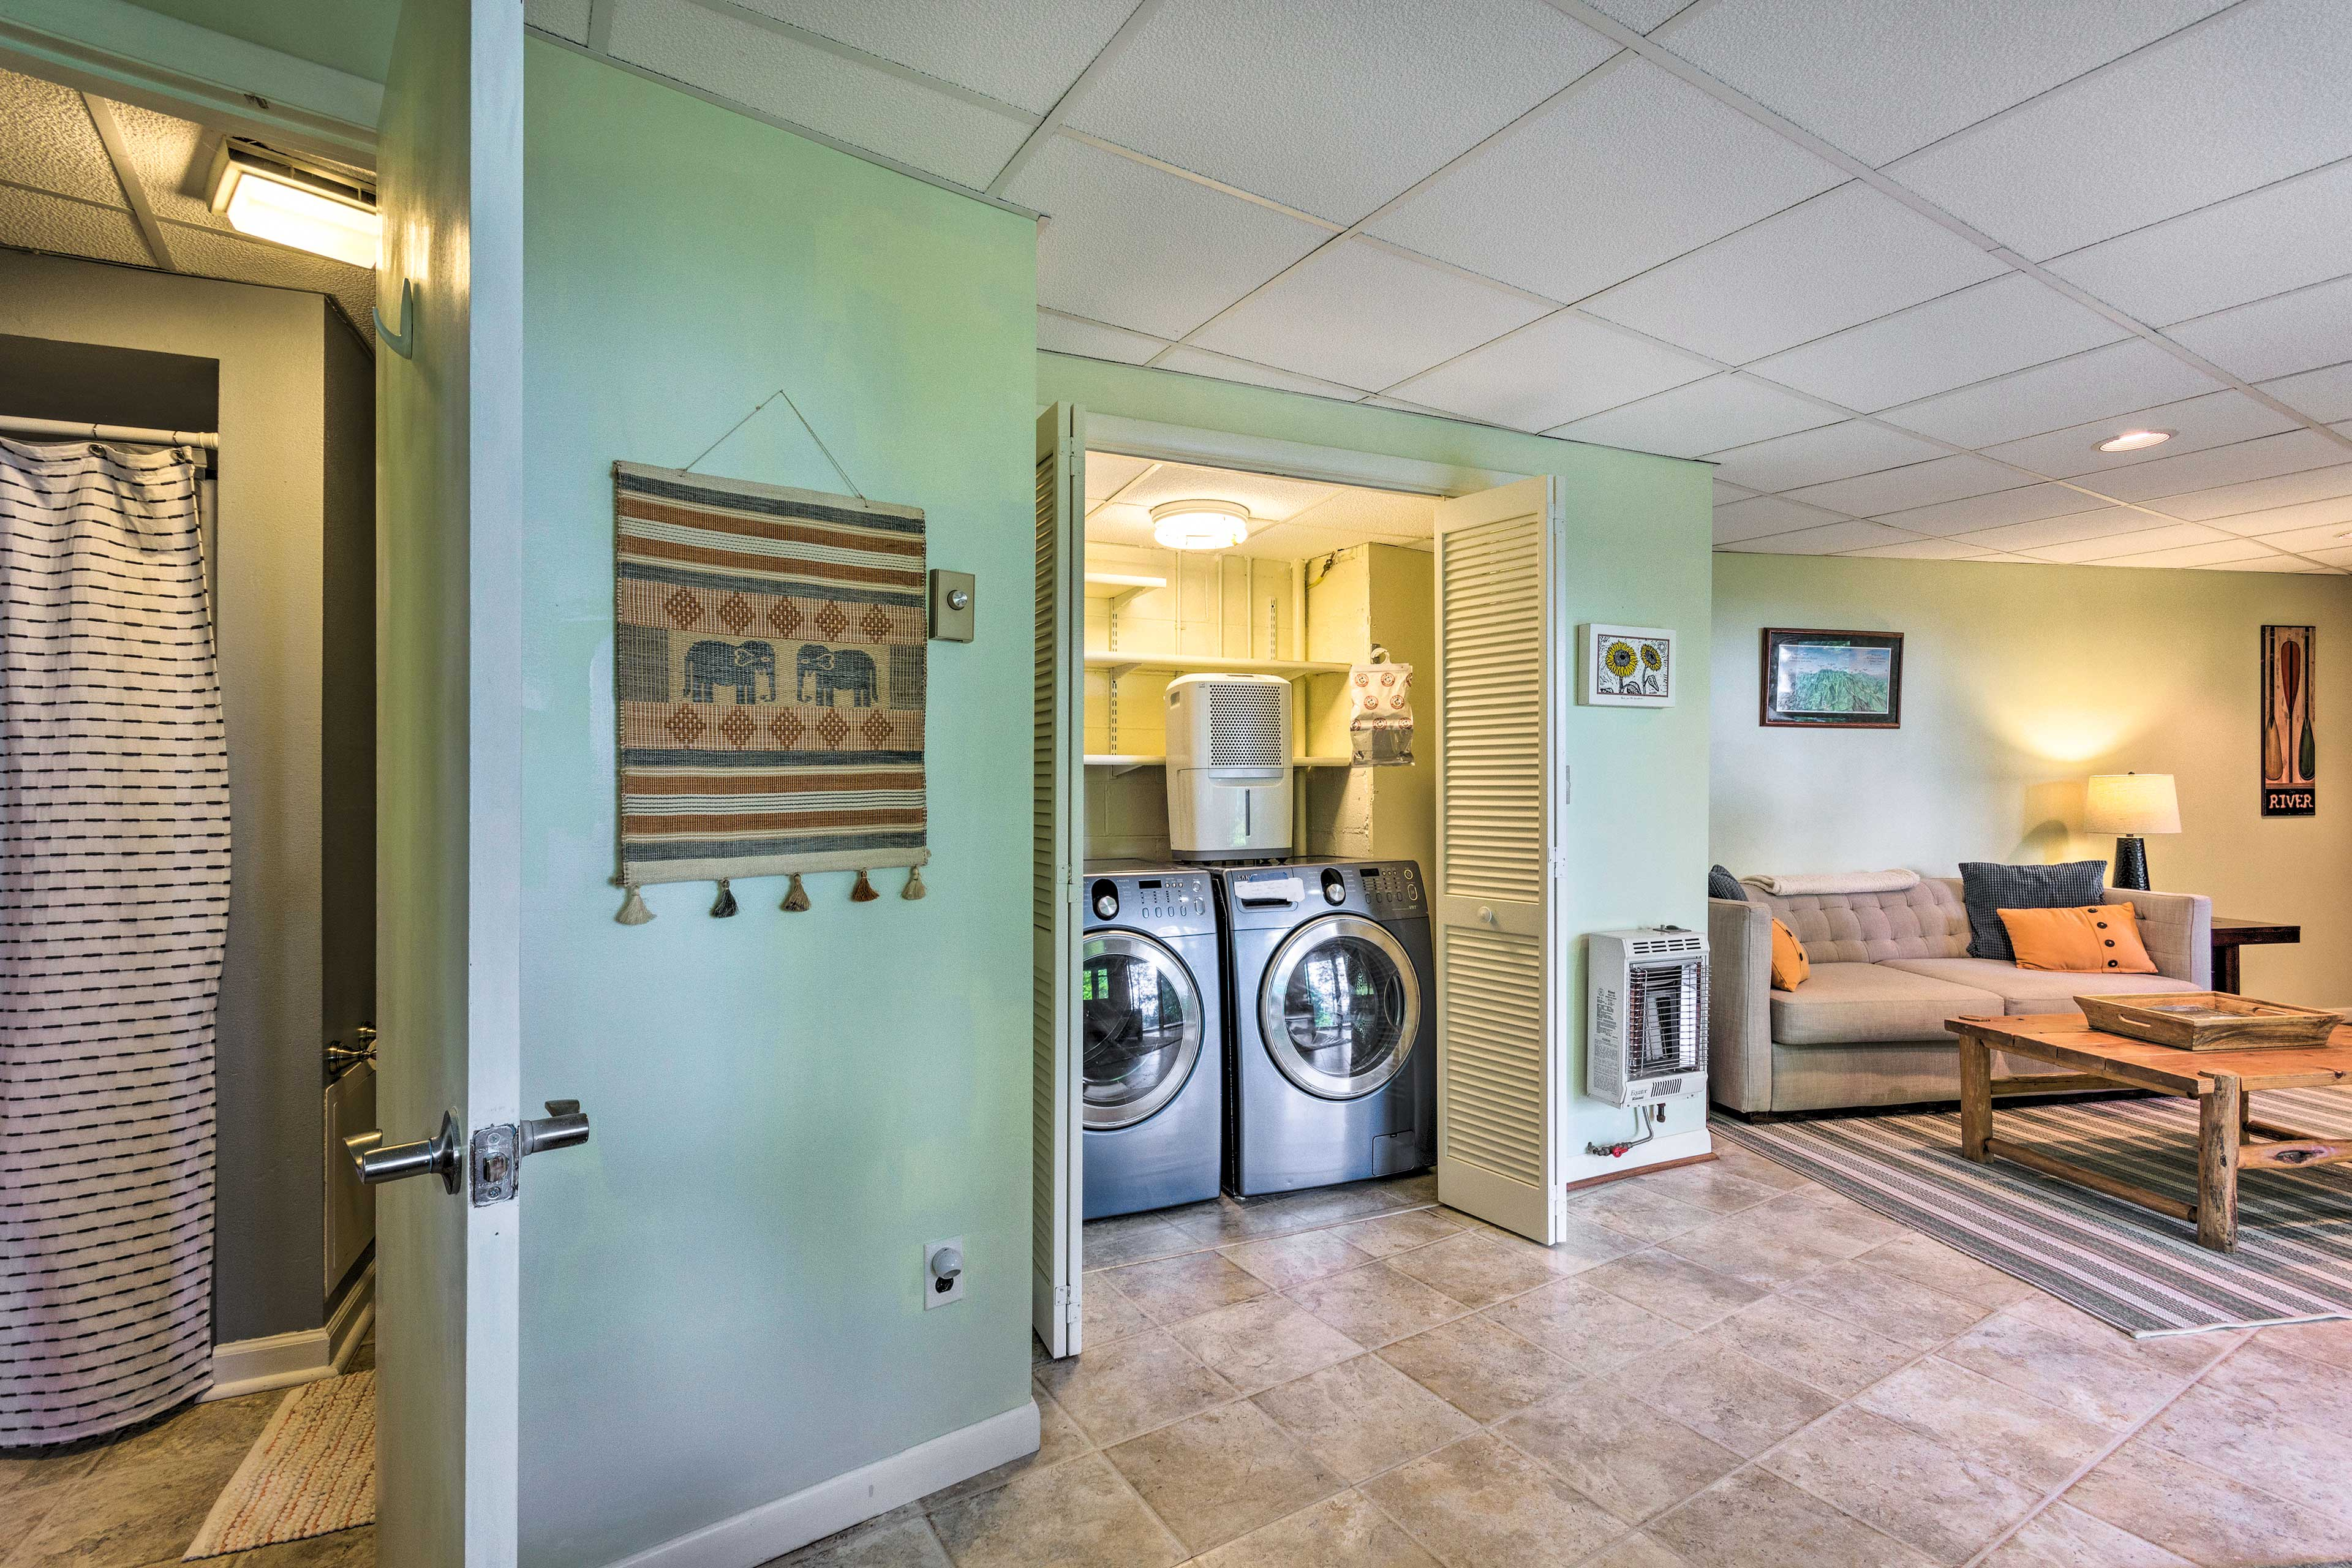 Tucked away, the washer and dryer are available for use.